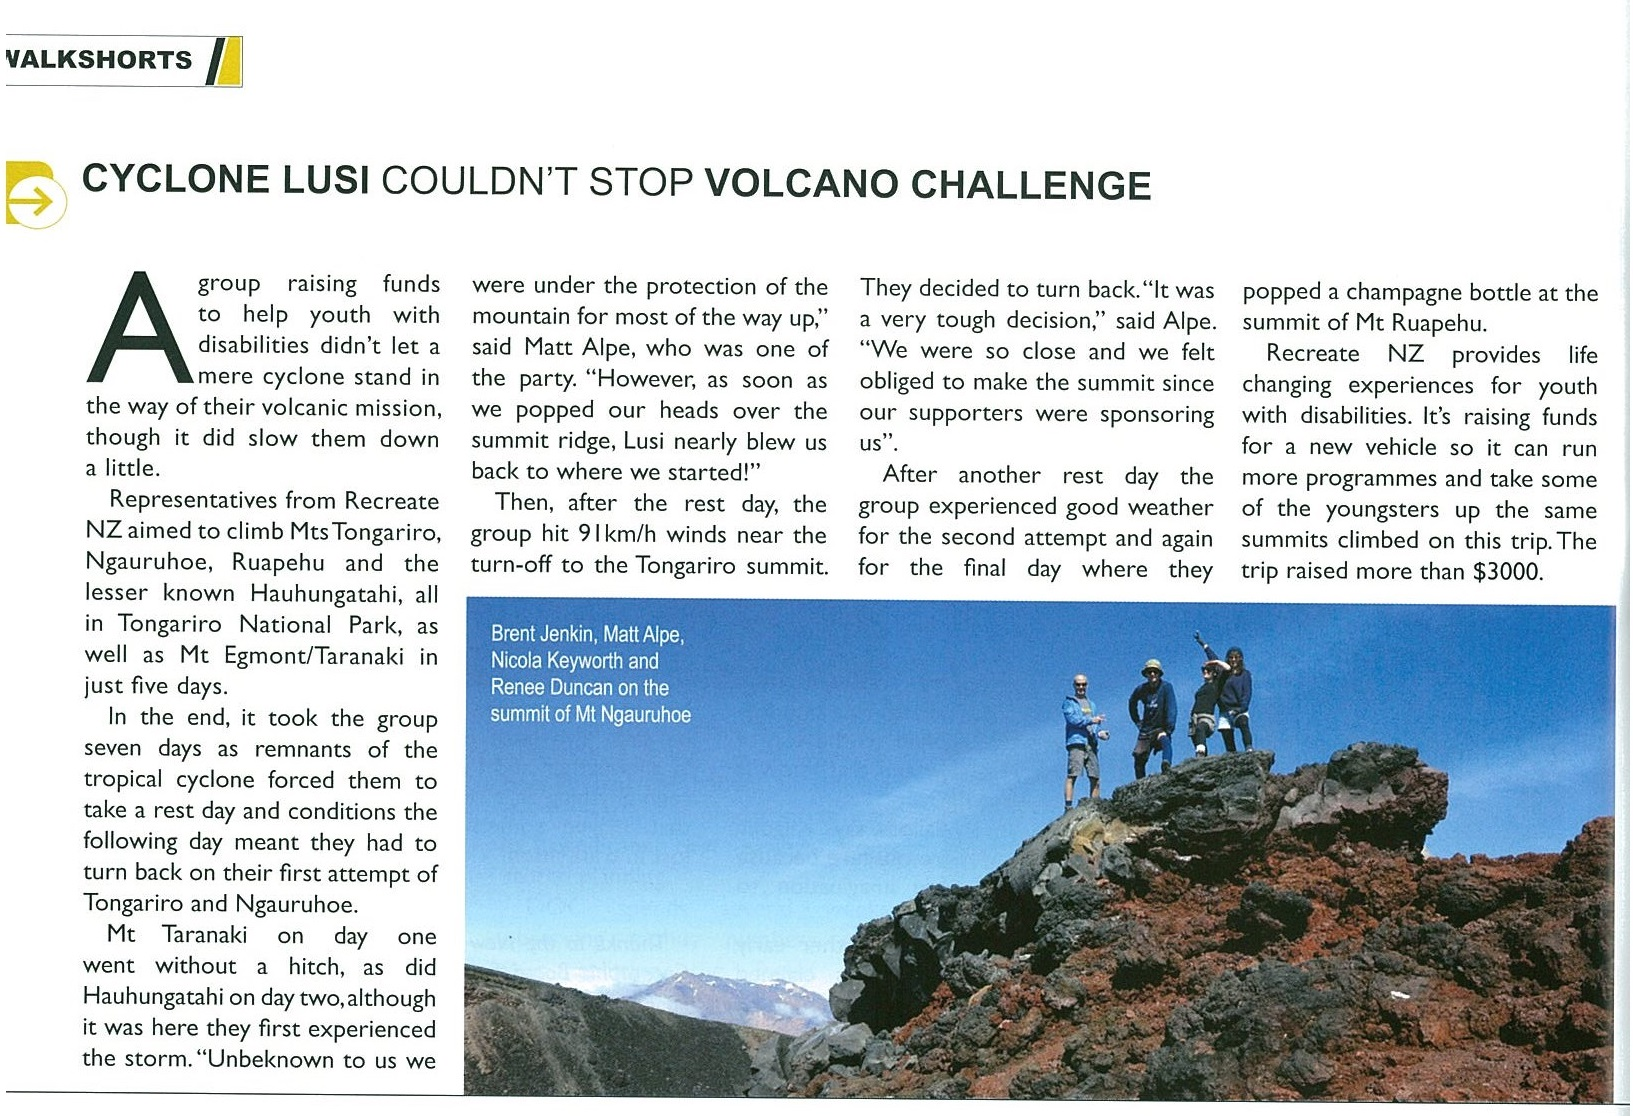 5 Volcanoes 5 Days Wilderness Mag 2014 crop